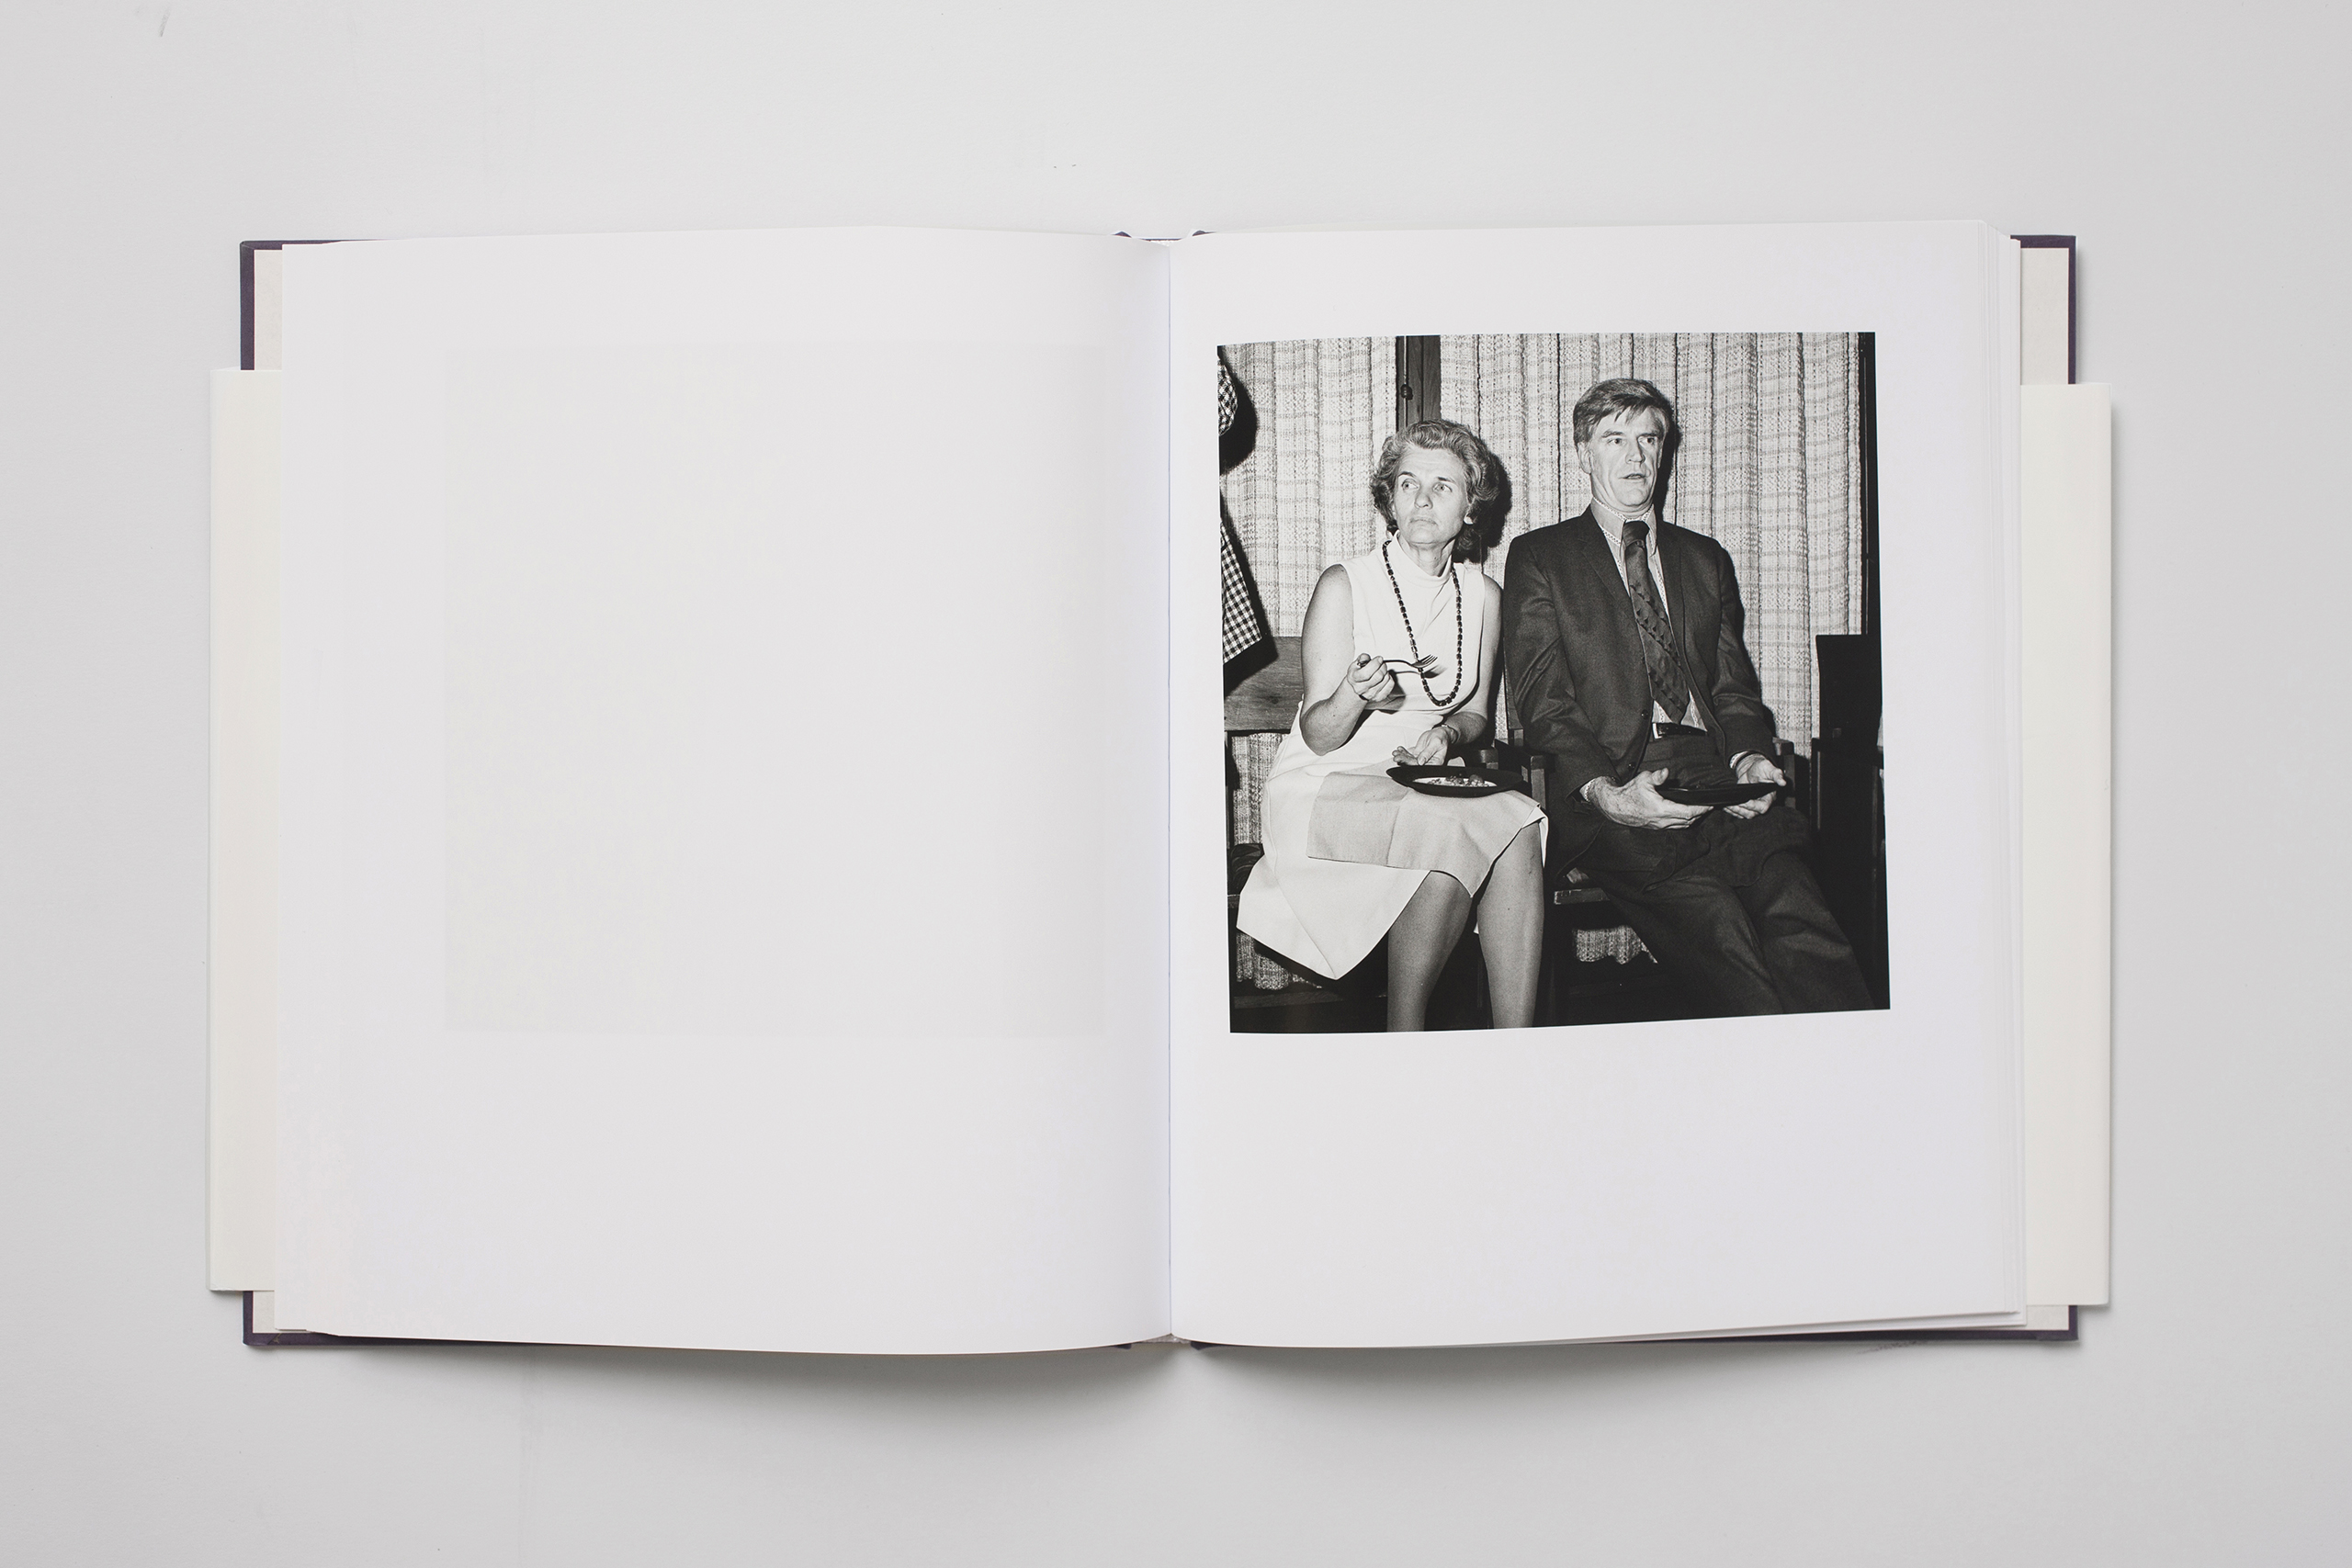 Selected by photographer and publisher Alec Soth:  What does it say the most powerfully uncomfortable photobook of 2016 was authored by a wildly underrated 86-year-old woman? Rosalind Fox Solomon should be the next White House photographer.""